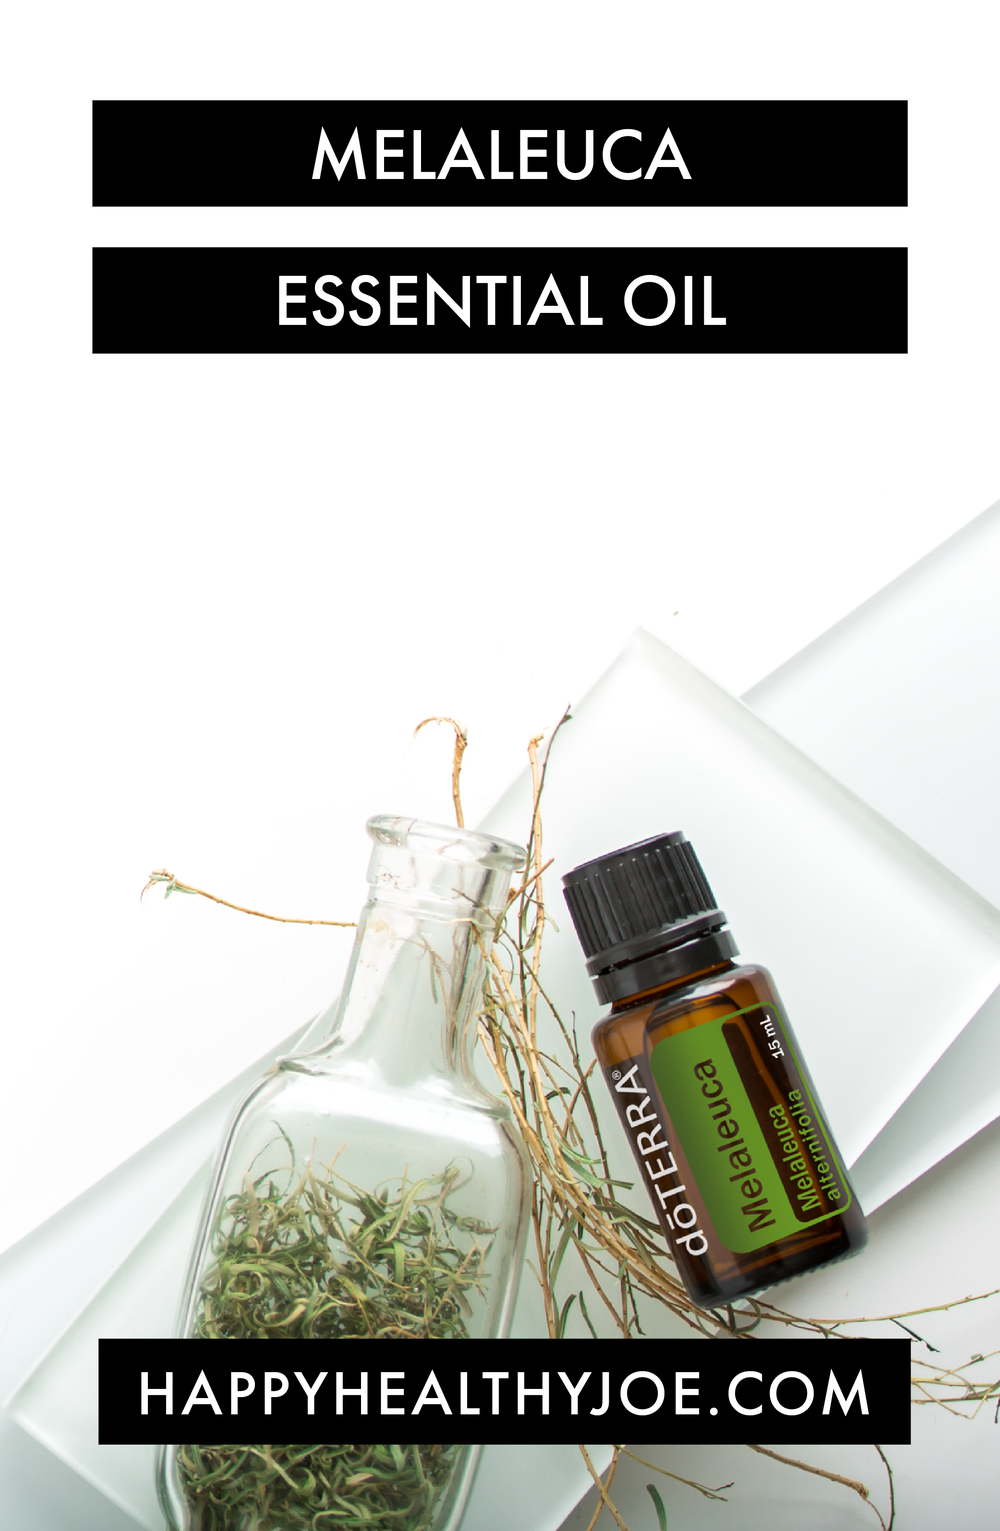 Top doTERRA Essential Oils For Fitness - Melaleuca Tea Tree Essential Oil